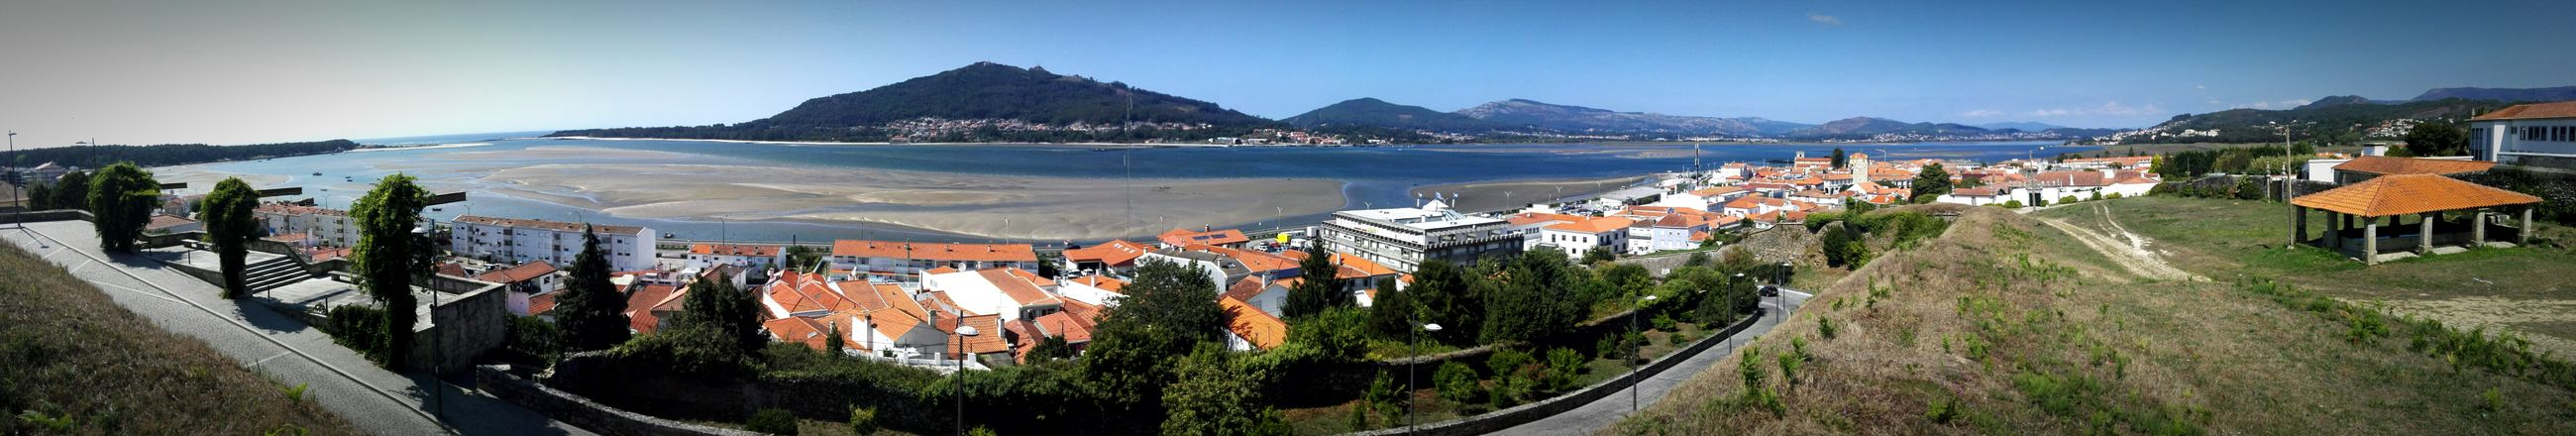 sea, beach, mountain, building exterior, clear sky, water, built structure, architecture, panoramic, high angle view, sand, coastline, town, shore, blue, large group of people, incidental people, horizon over water, house, sky